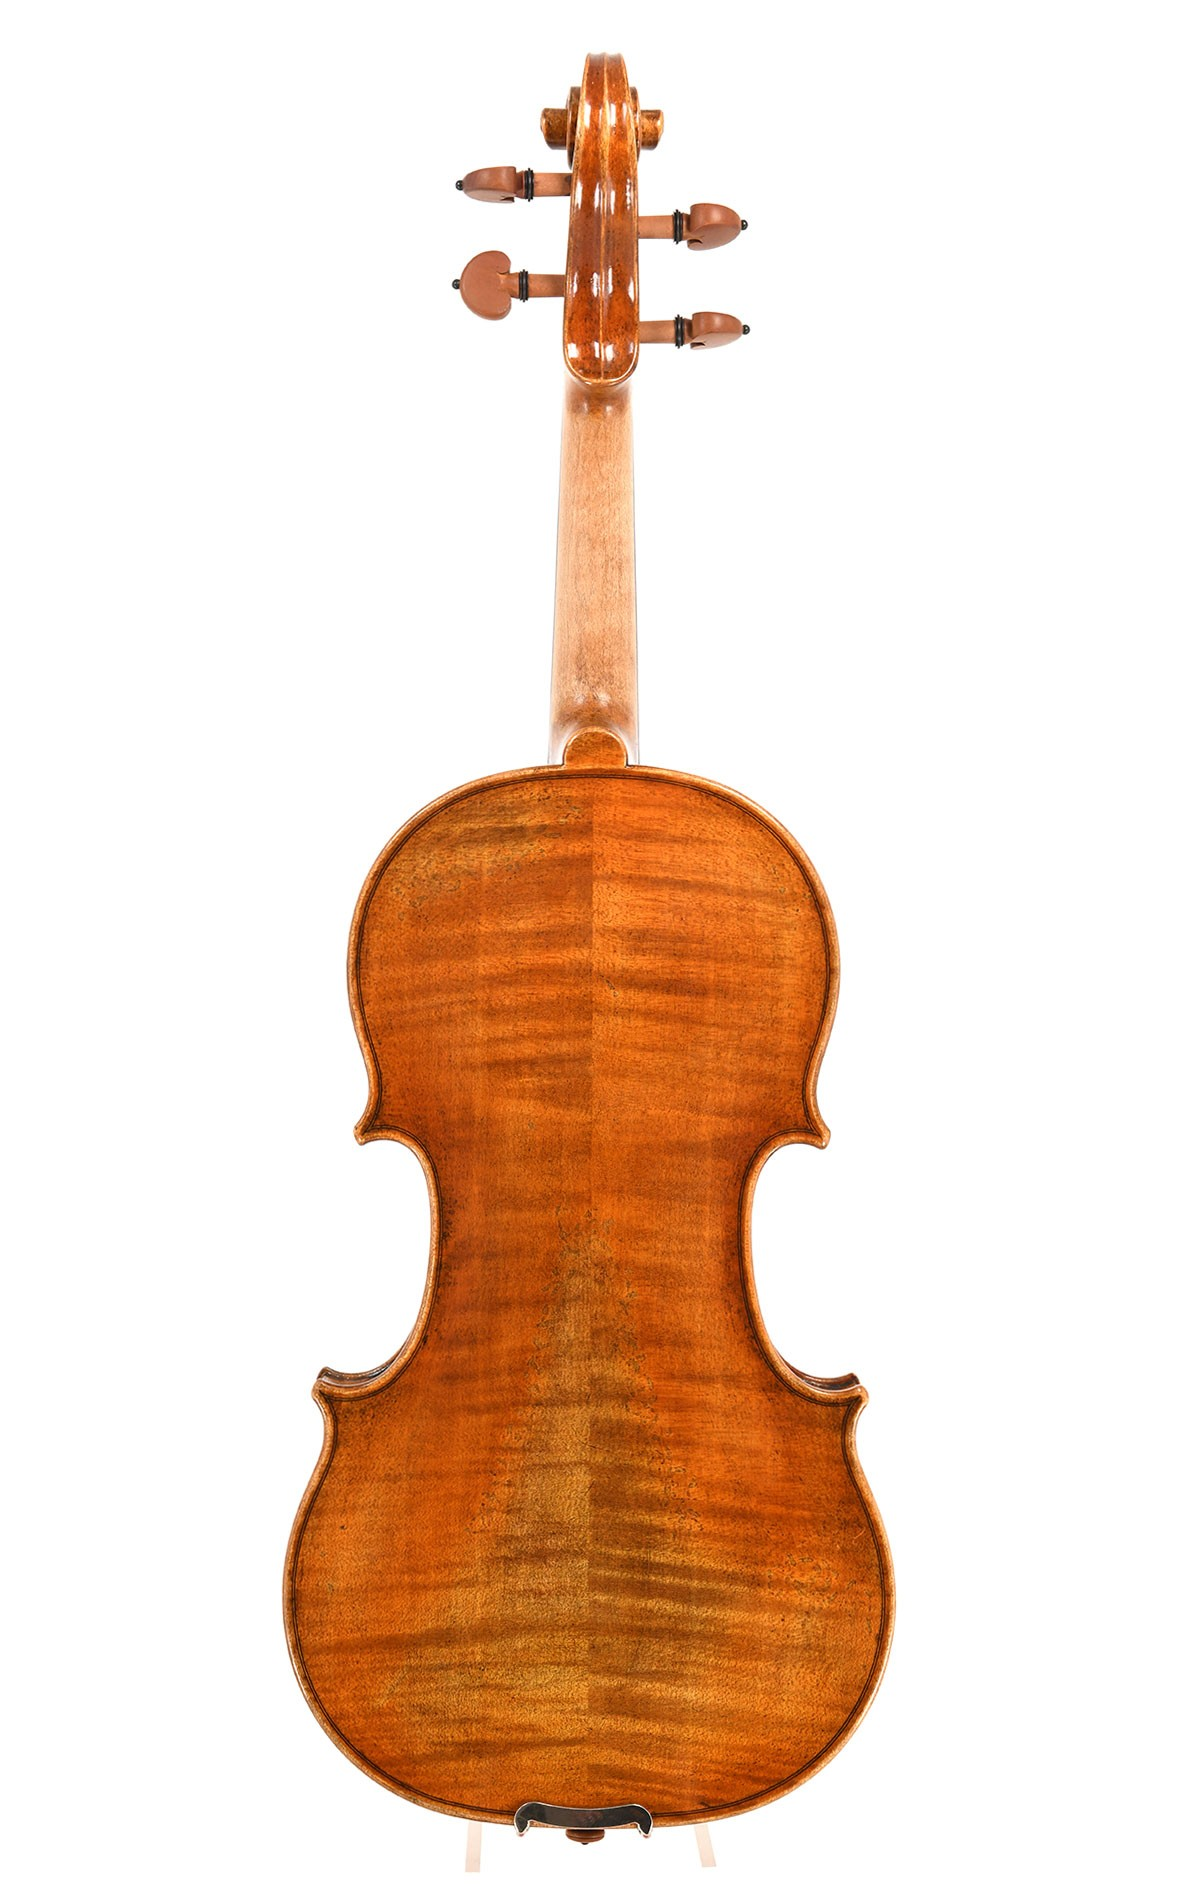 SALE CV Selectio Opus 14 violins – the ideal back-up instrument or travel violin